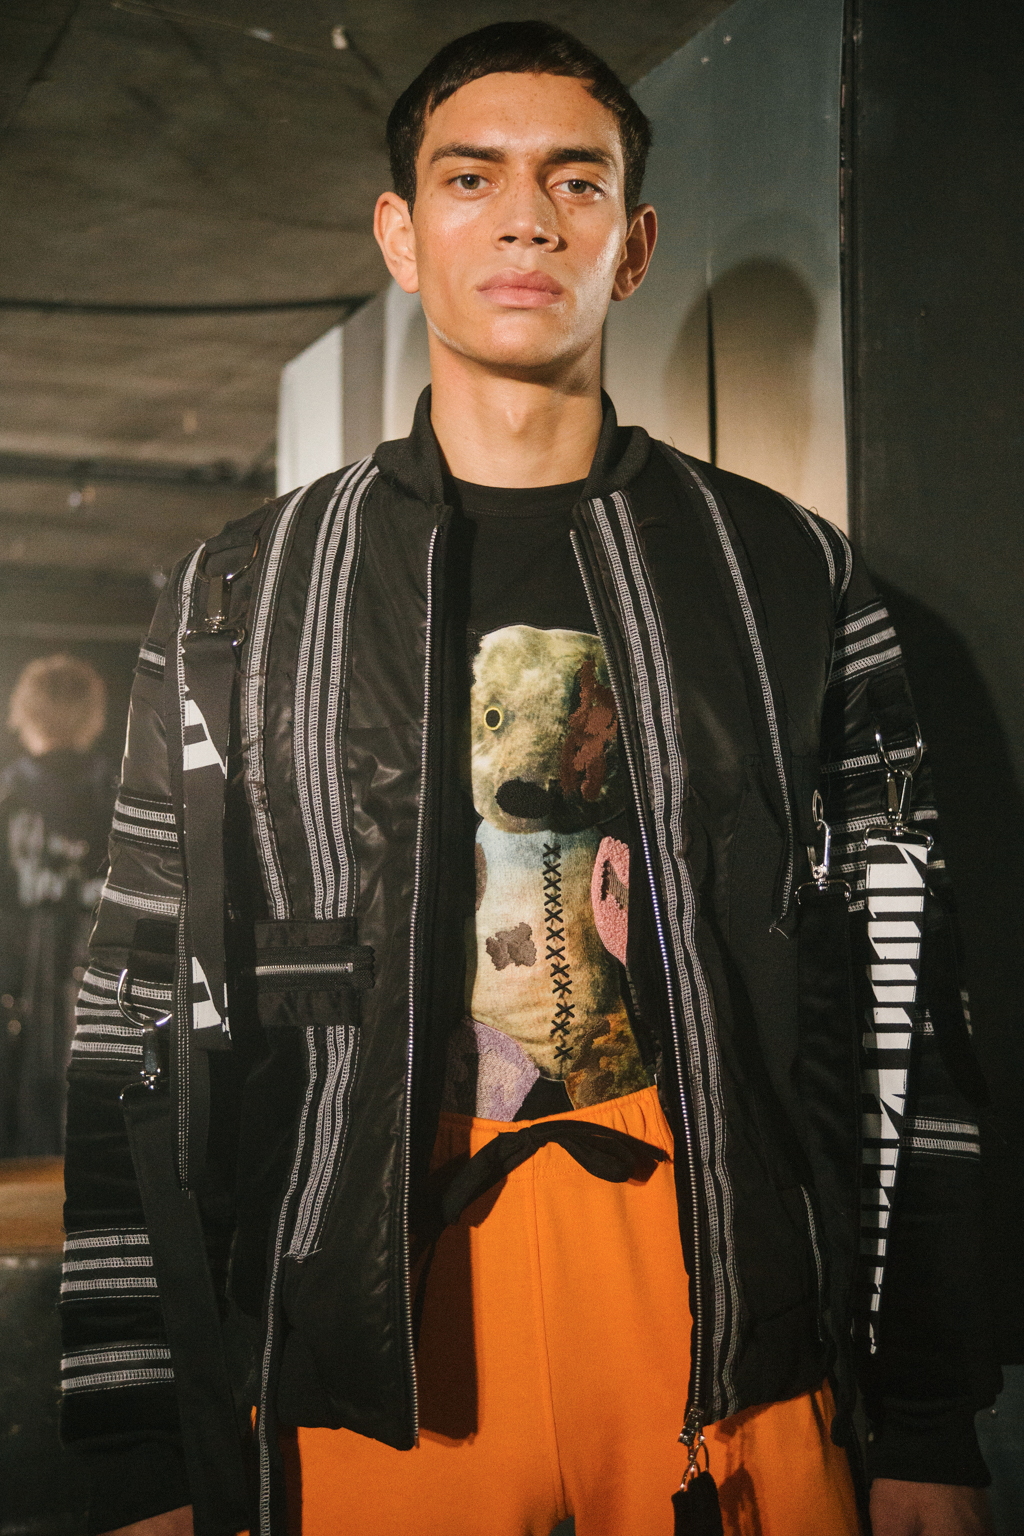 lfwm-aw17-blood-brother-luis-calow-the-upcoming-23